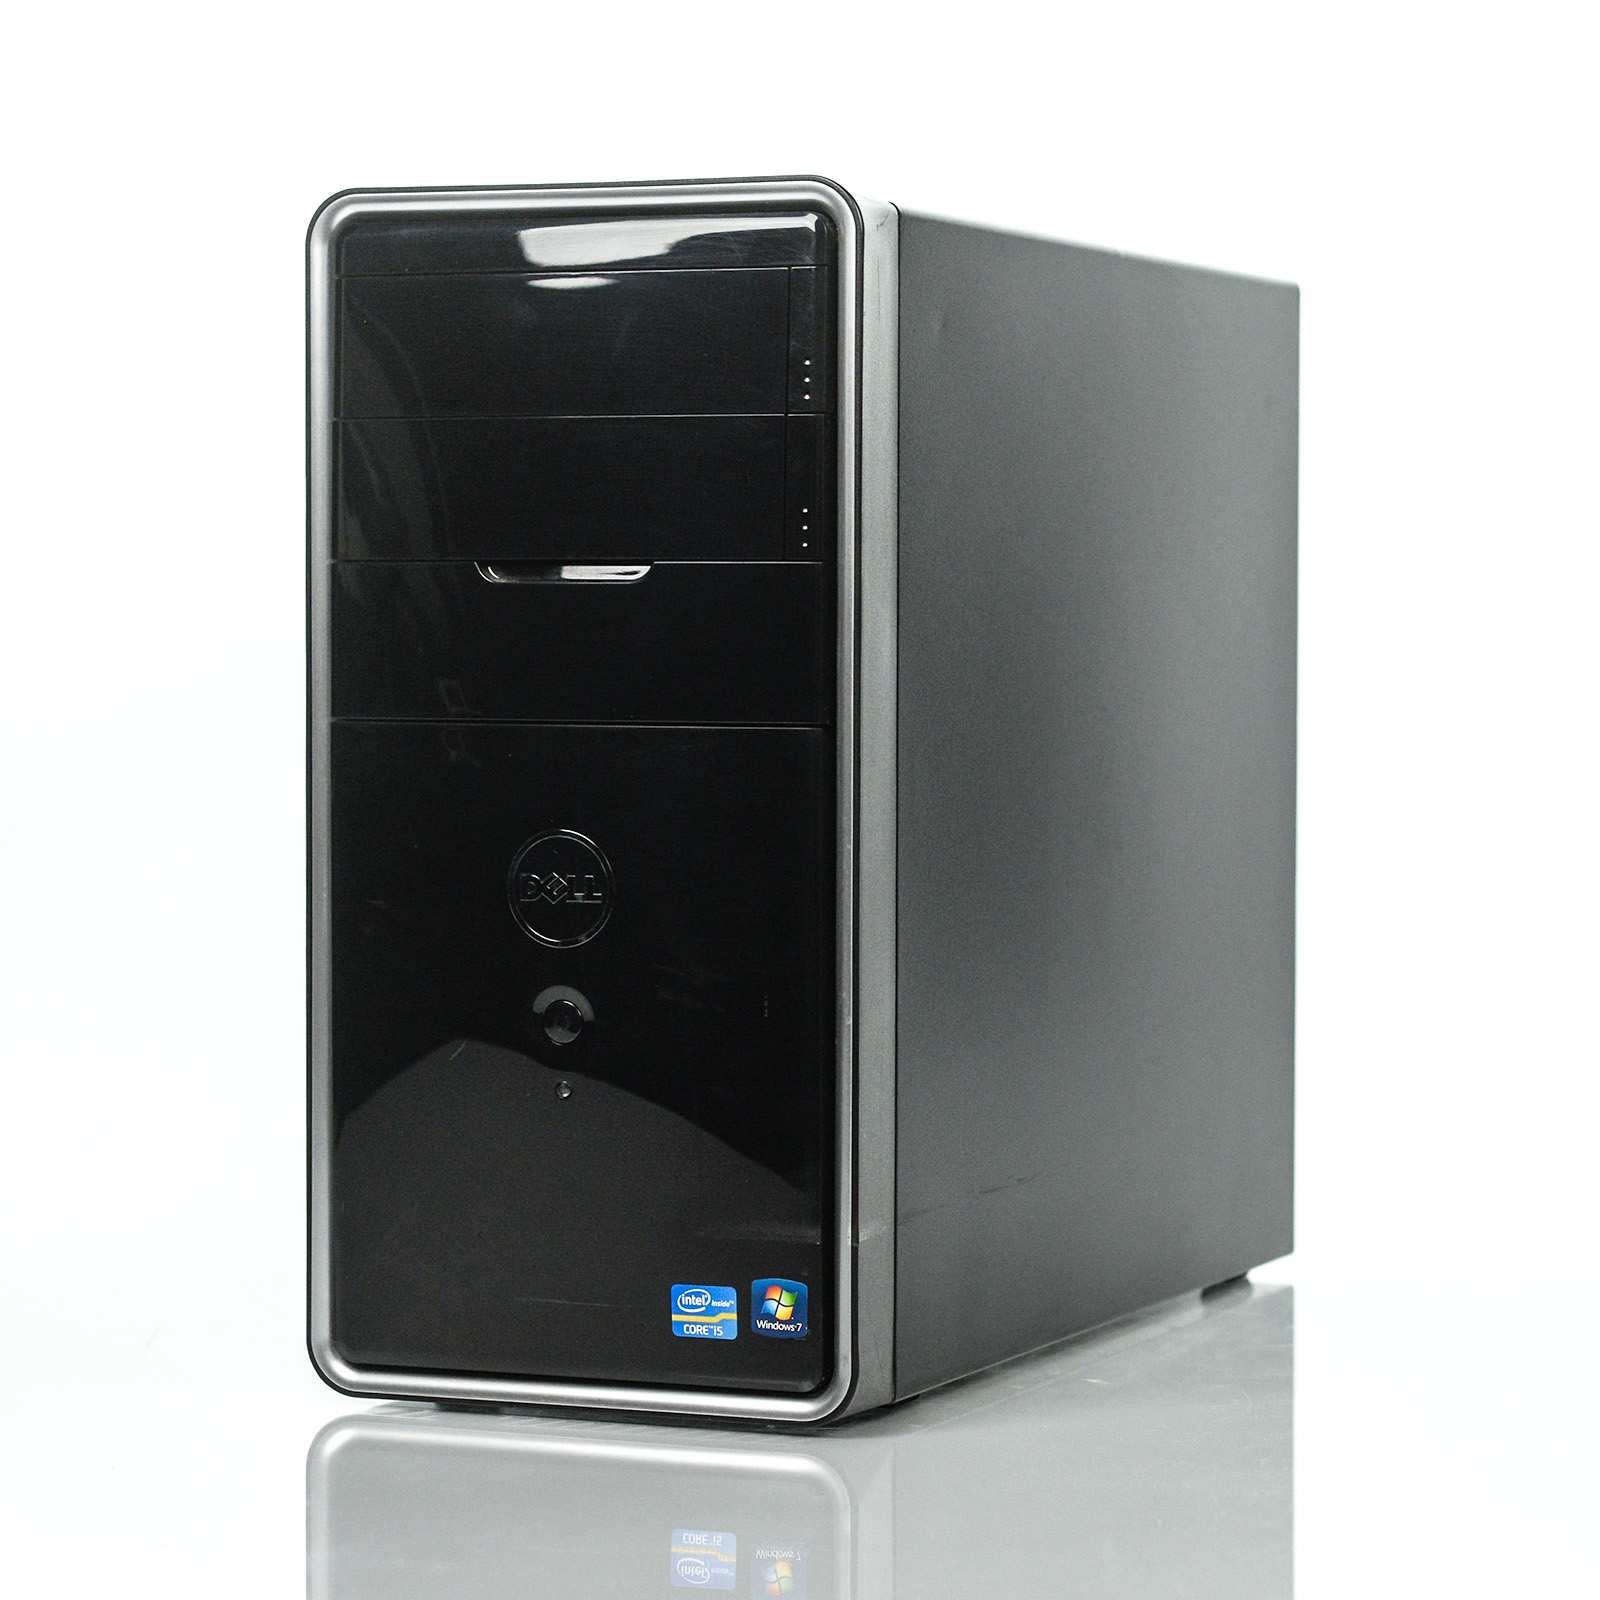 Dell Inspiron 660 Drivers for Windows